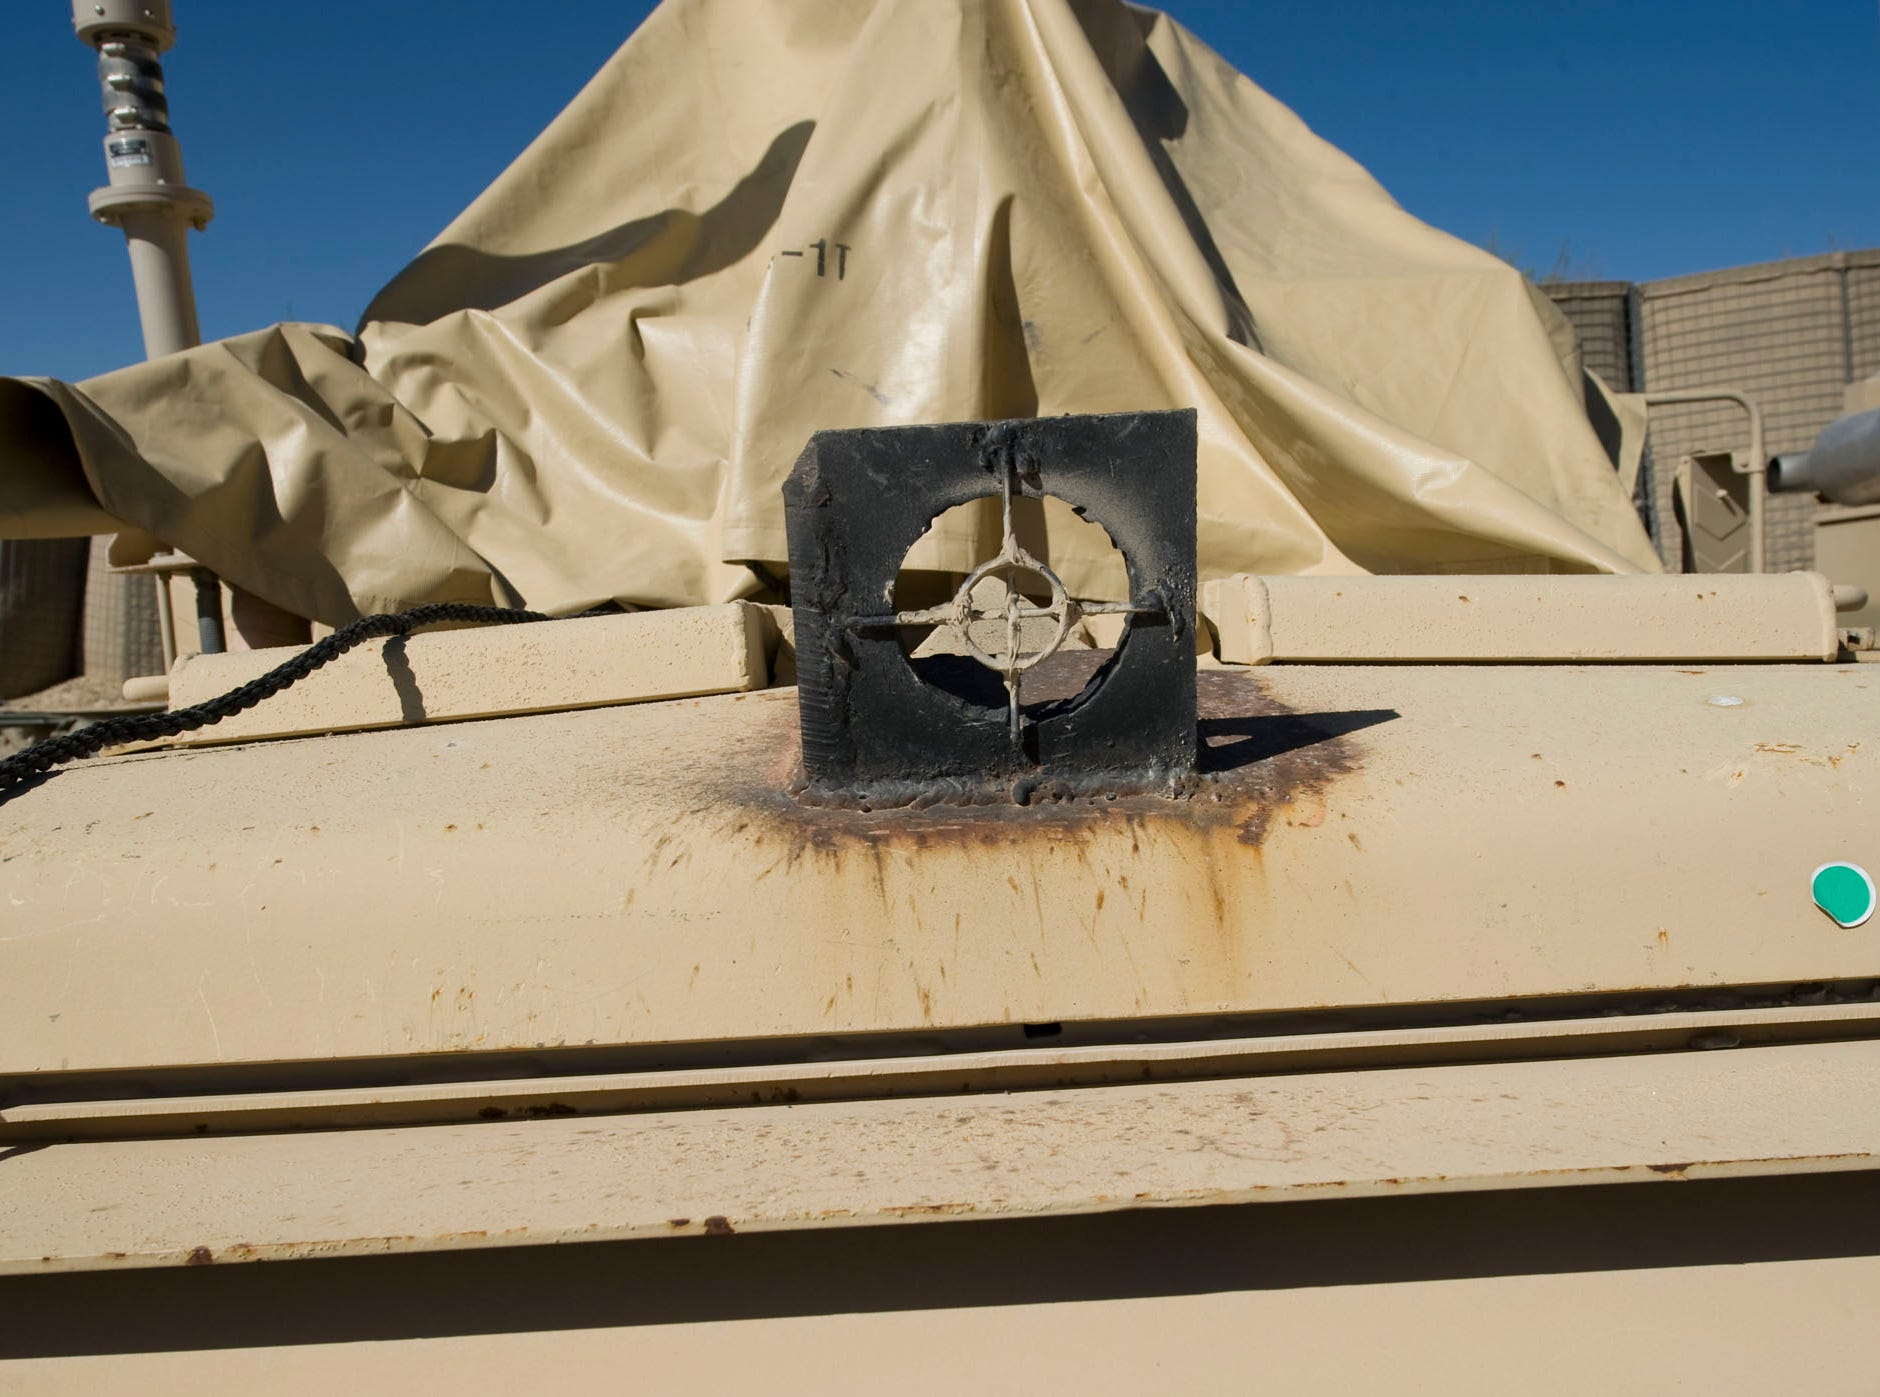 A soldier's handiwork adorns a patrol vehicle at Forward Operating Base Herrera in northeast Paktia Province in Afghanistan. The remote base is home to Vermont's Alpha Company, 3rd Battalion, 172nd Infantry (Mountain) as well as Airborne, Afghan National Army, Border Patrol and other Afghan support and is less than 8 miles from the border of Pakistan.